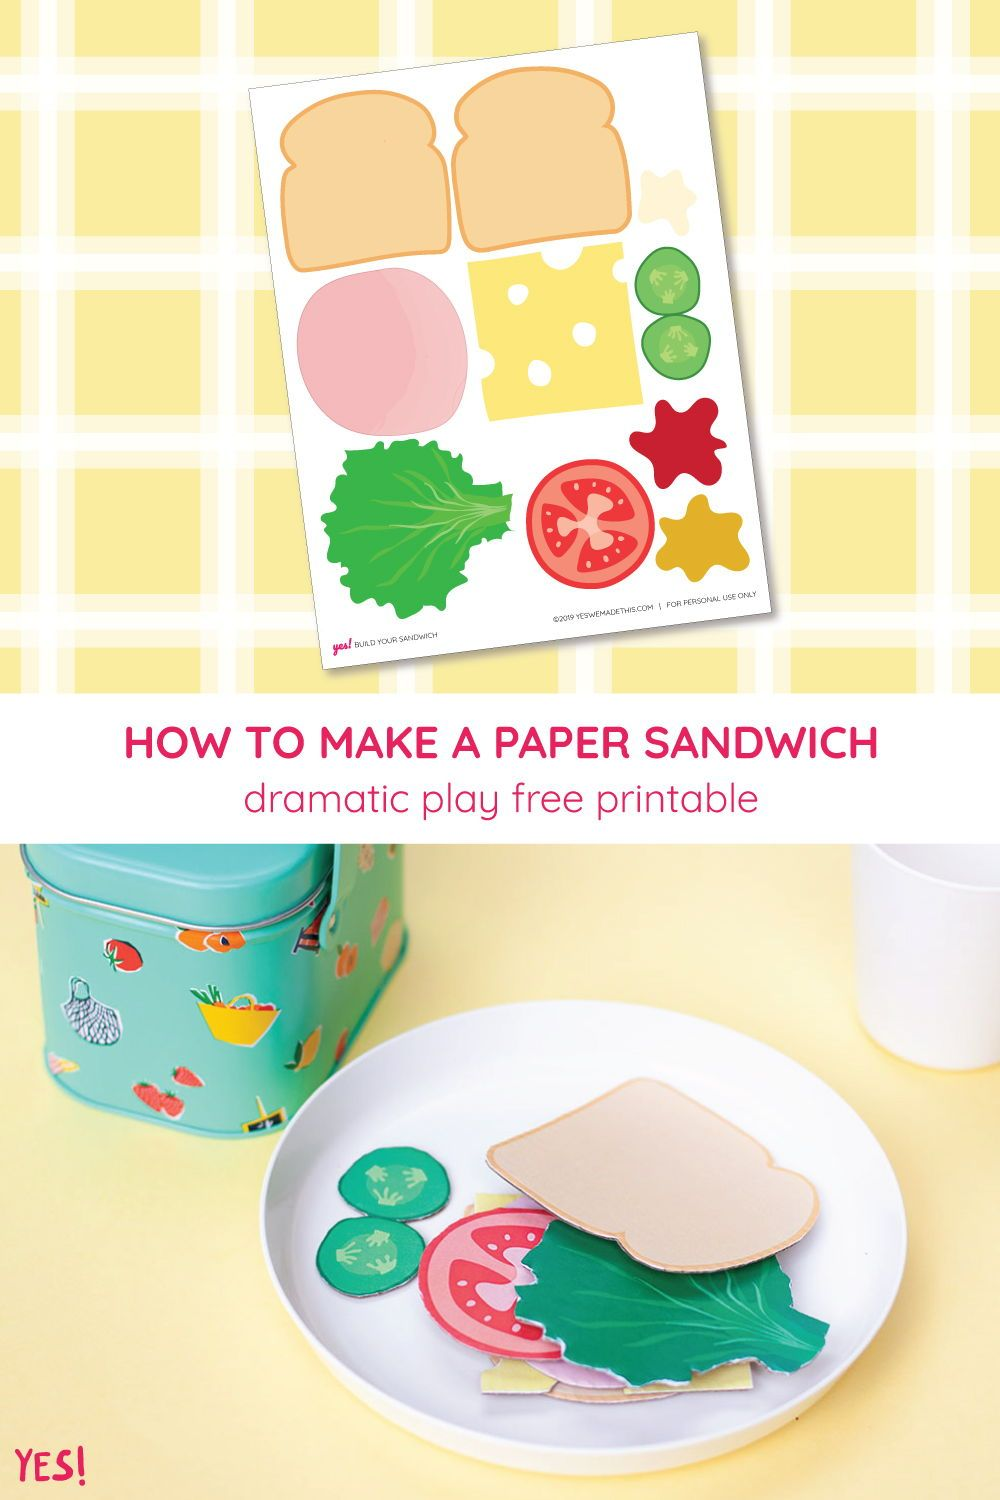 Diy Play Food Sandwich Printable Yes We Made This Printables Free Kids Creative Activities For Toddlers Free Printable Activities